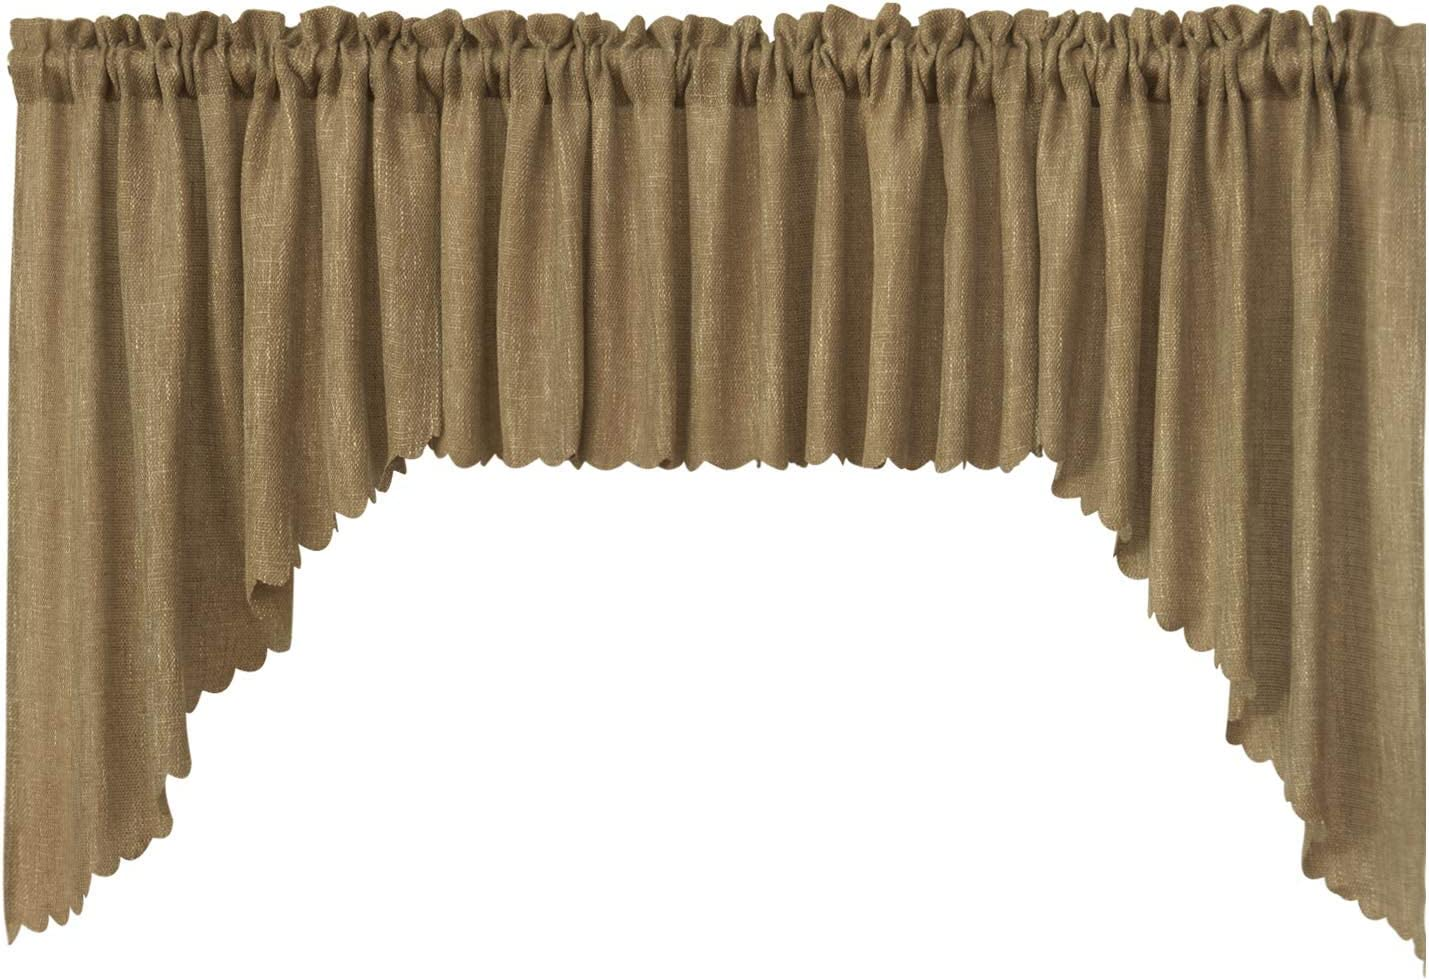 VORTTA Burlap Look Soft Valance and Swag Curtains Set Rustic and Natural Kitchen Curtains, 36 inches Length